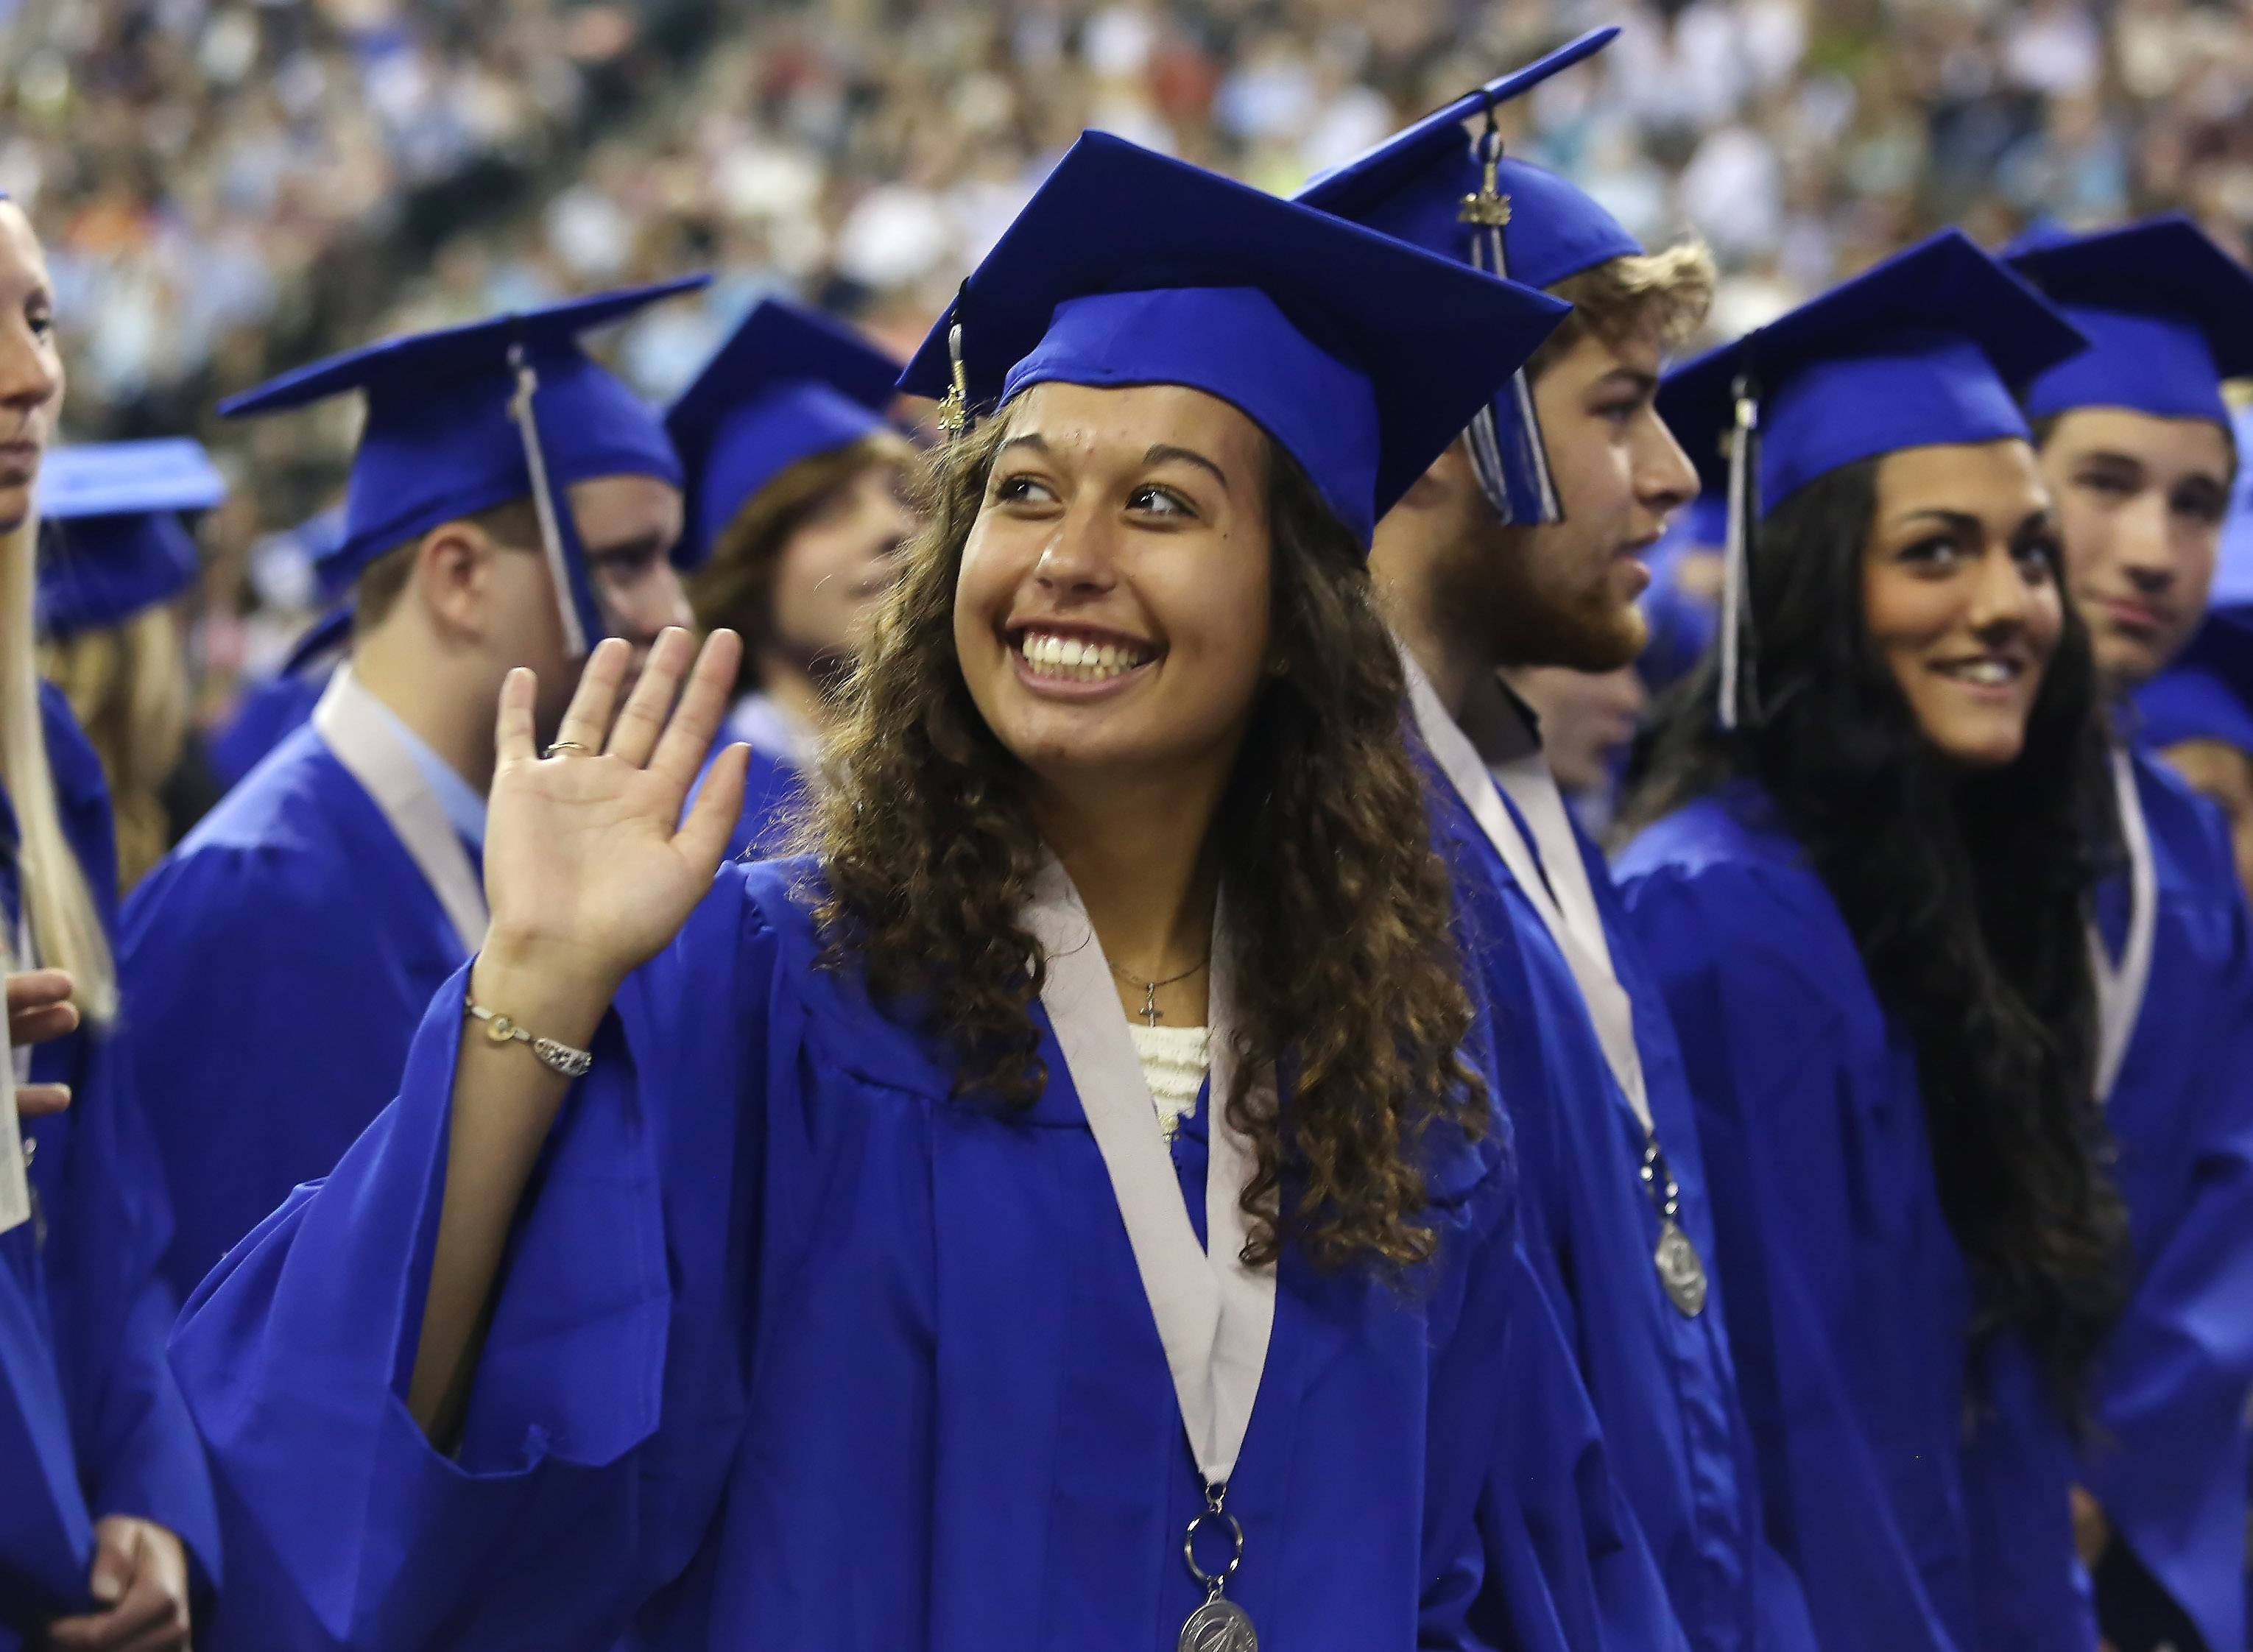 Victoria Parrilli waves to family during the St. Charles North High School graduation Sunday at the Sears Centre in Hoffman Estates. Family and friends watched as 505 students received their diplomas during the commencement exercises.